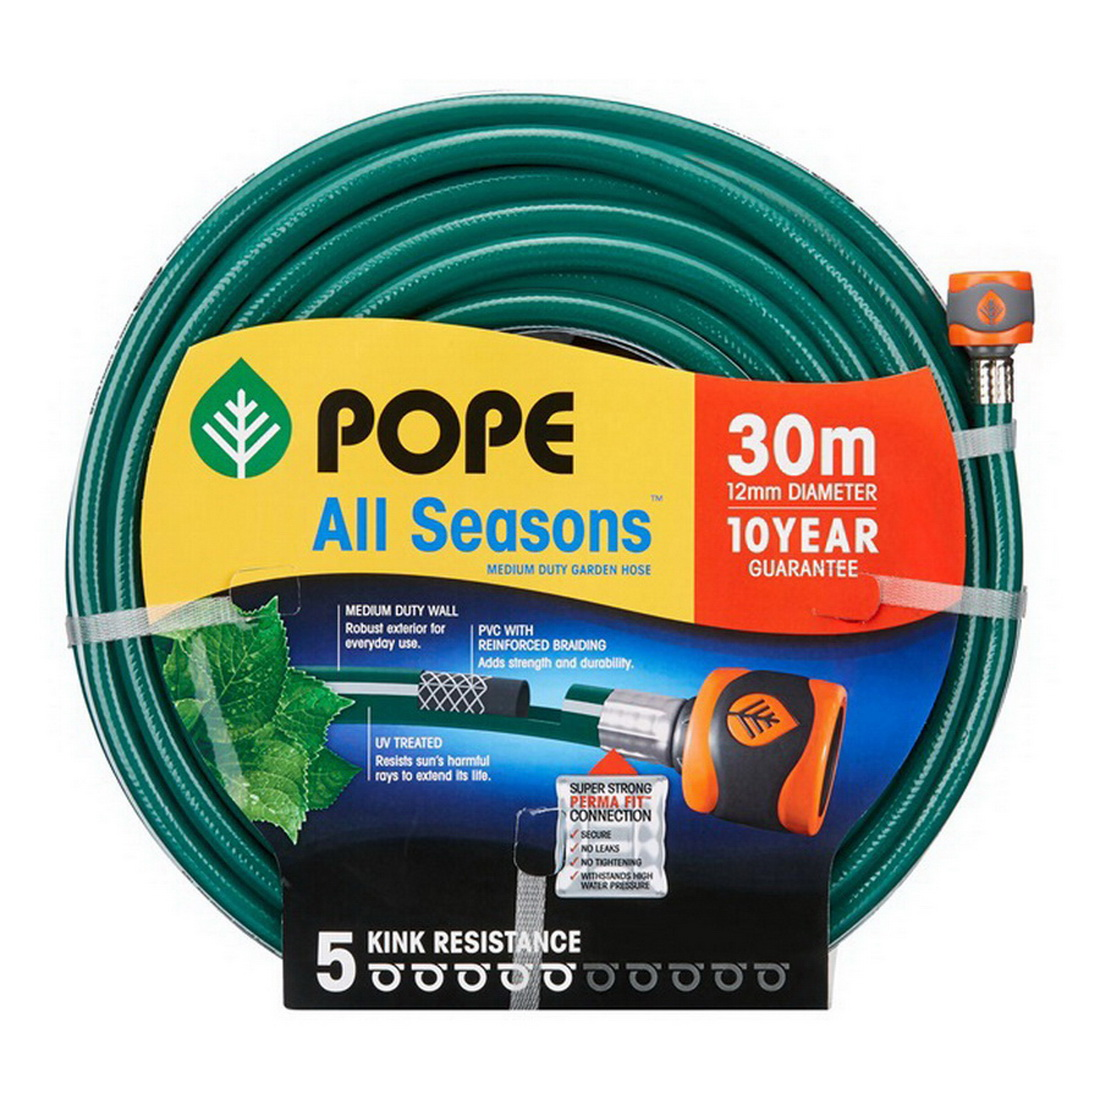 All Seasons Tap Ready Fitted Garden Hose 12mm x 30m